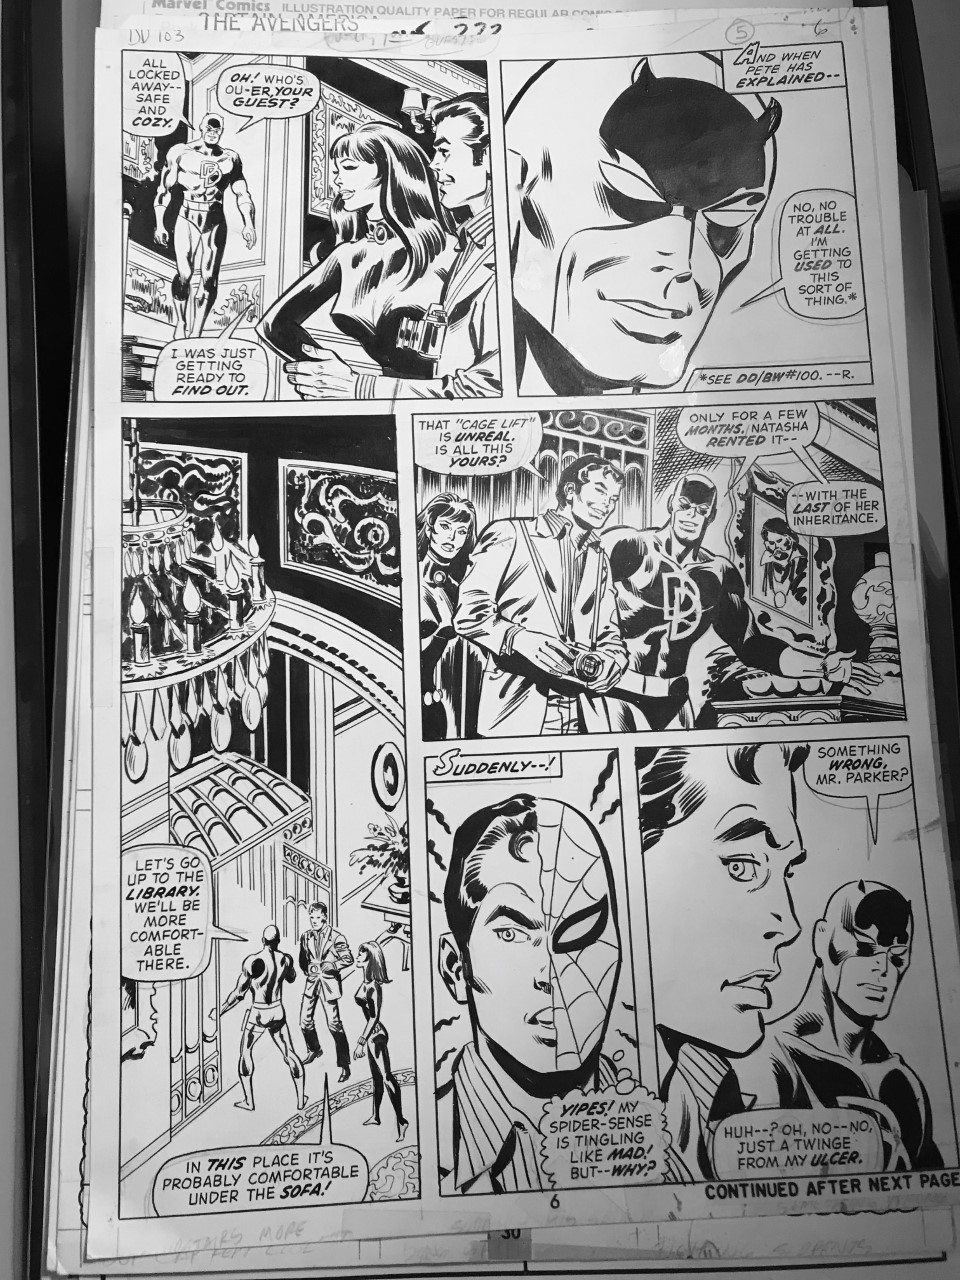 Daredevil Issue 103. Art by Bob Brown and Don Heck.